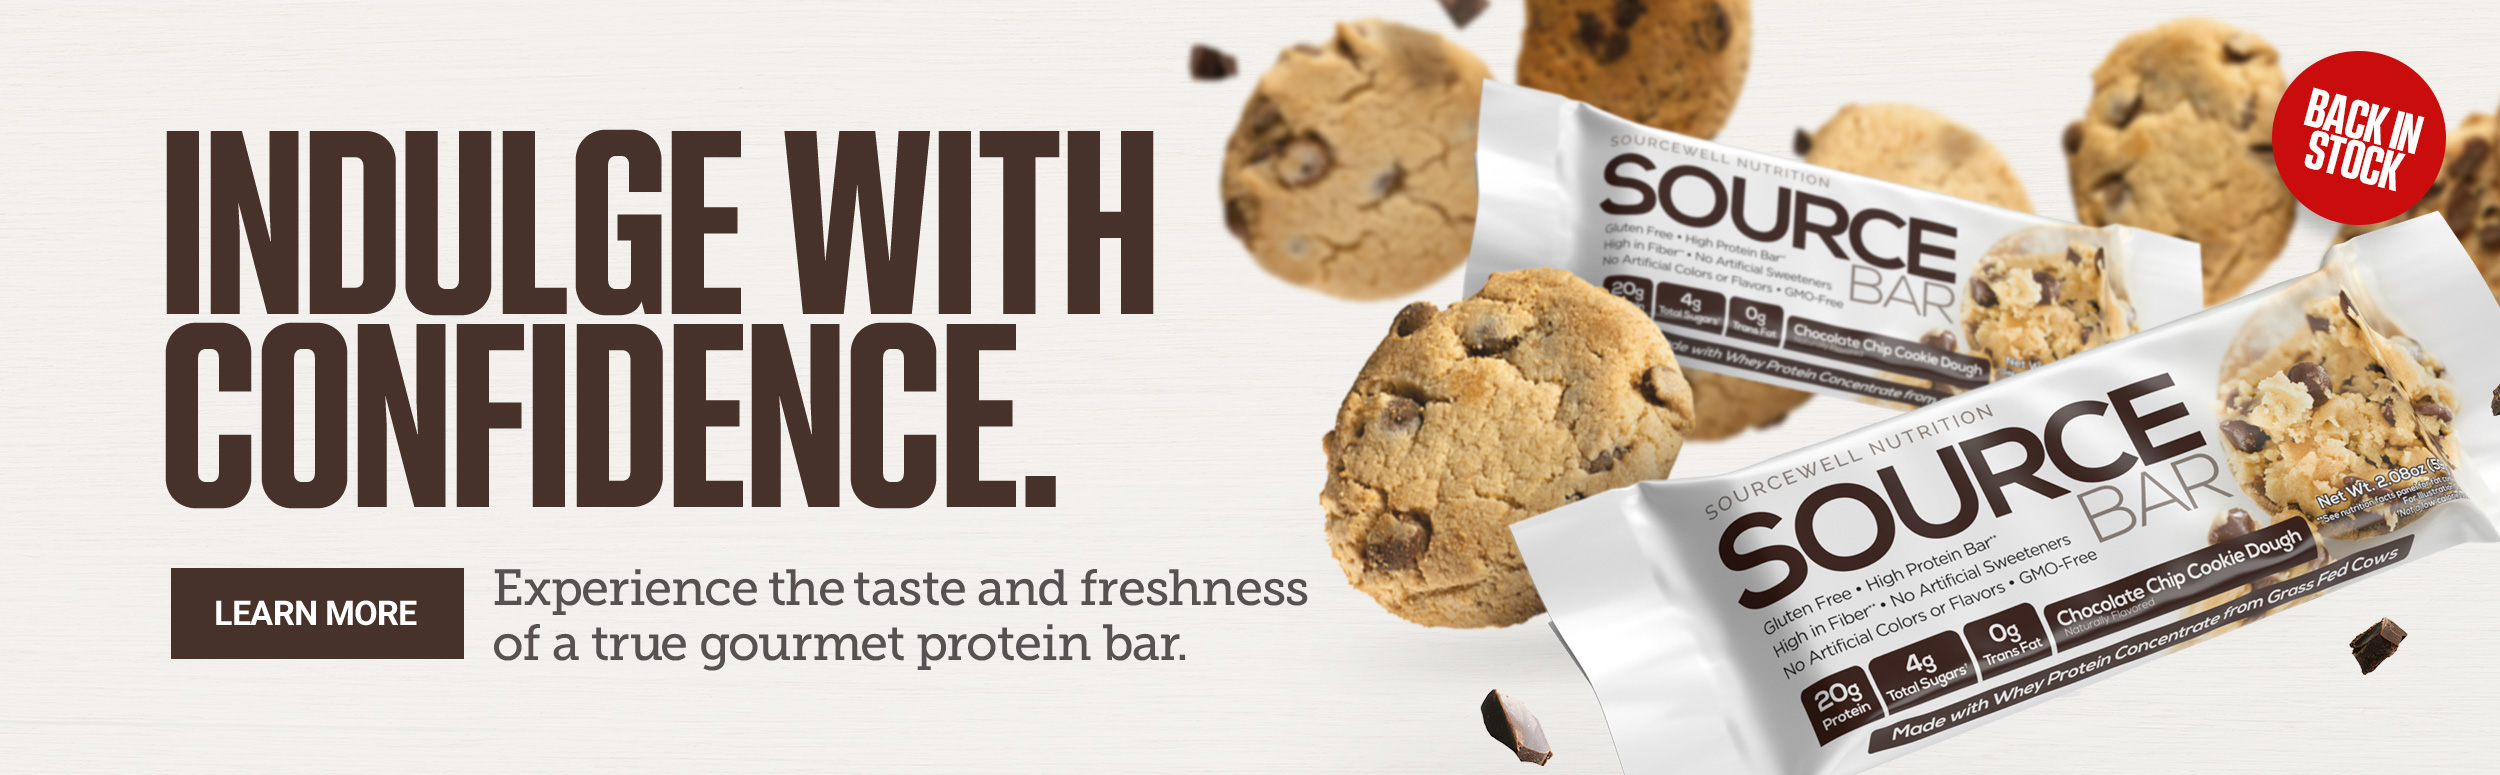 Source Bar Banner, Indulge with Confidence